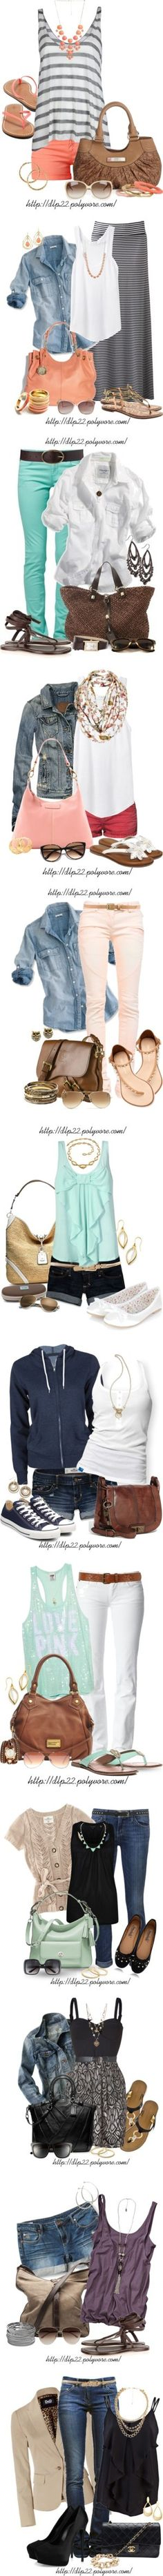 Lots of cute outfit ideas!